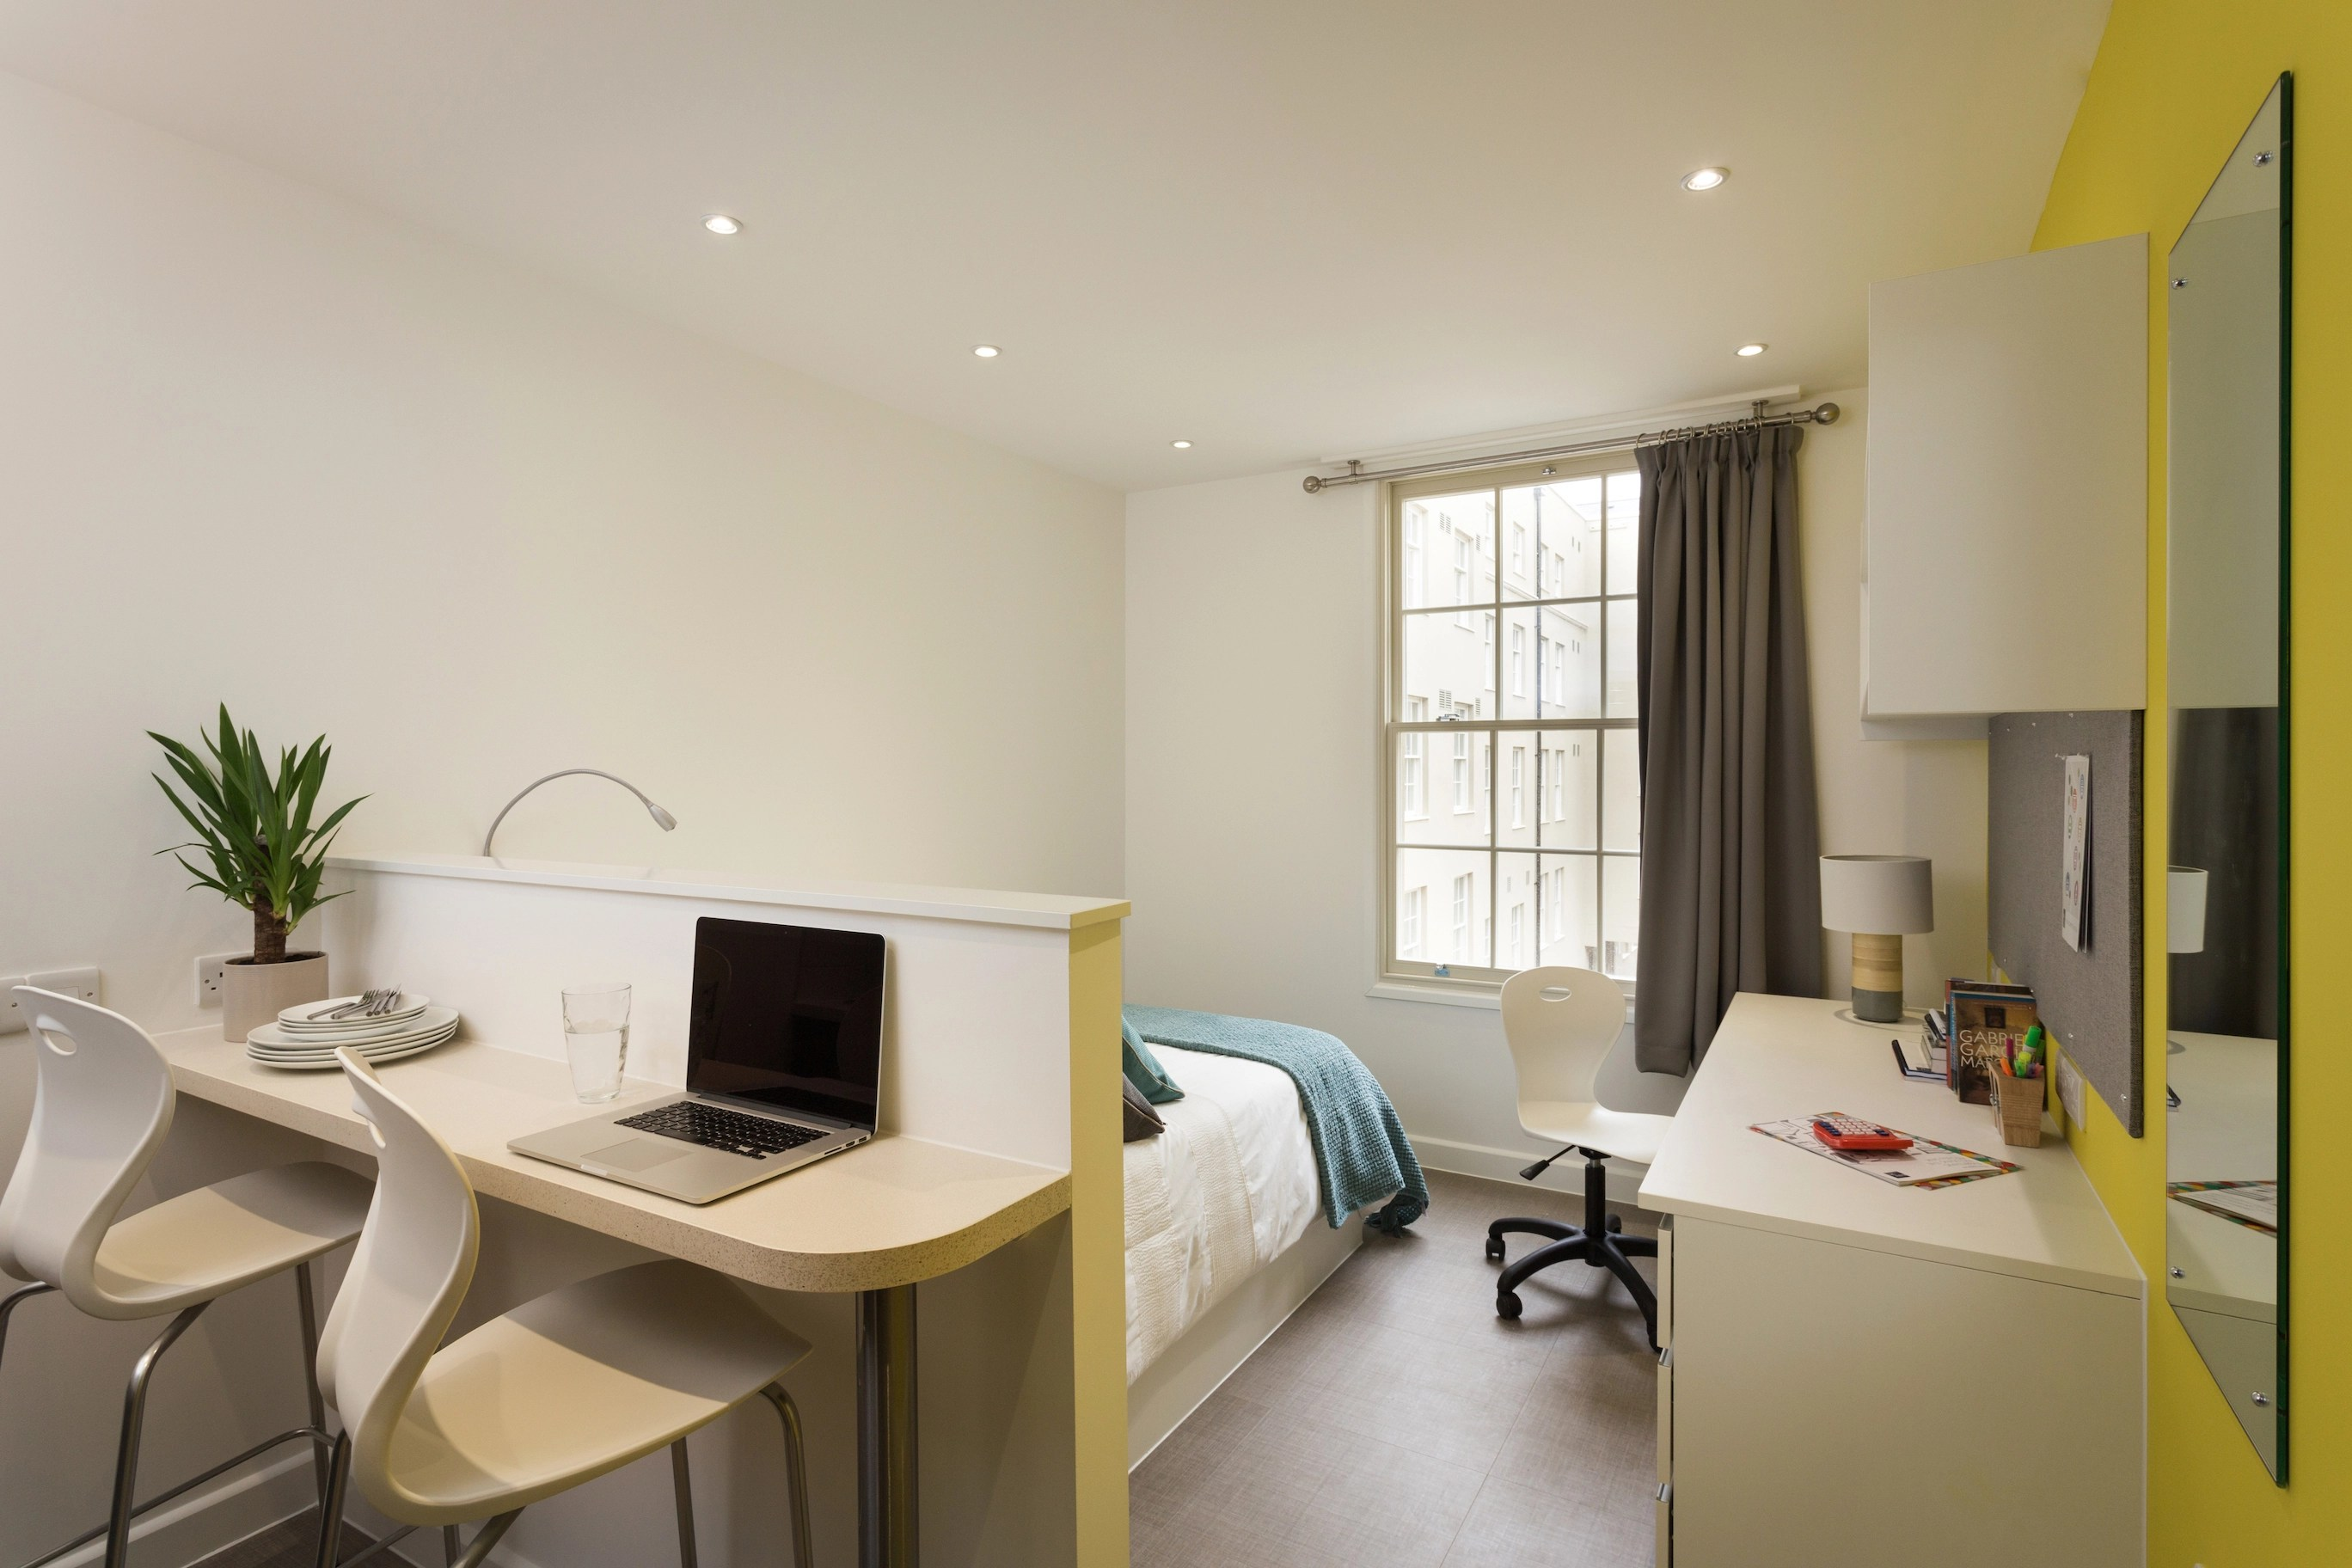 kitchen table storage easiest floor to keep clean green park house accommodation student bath ...